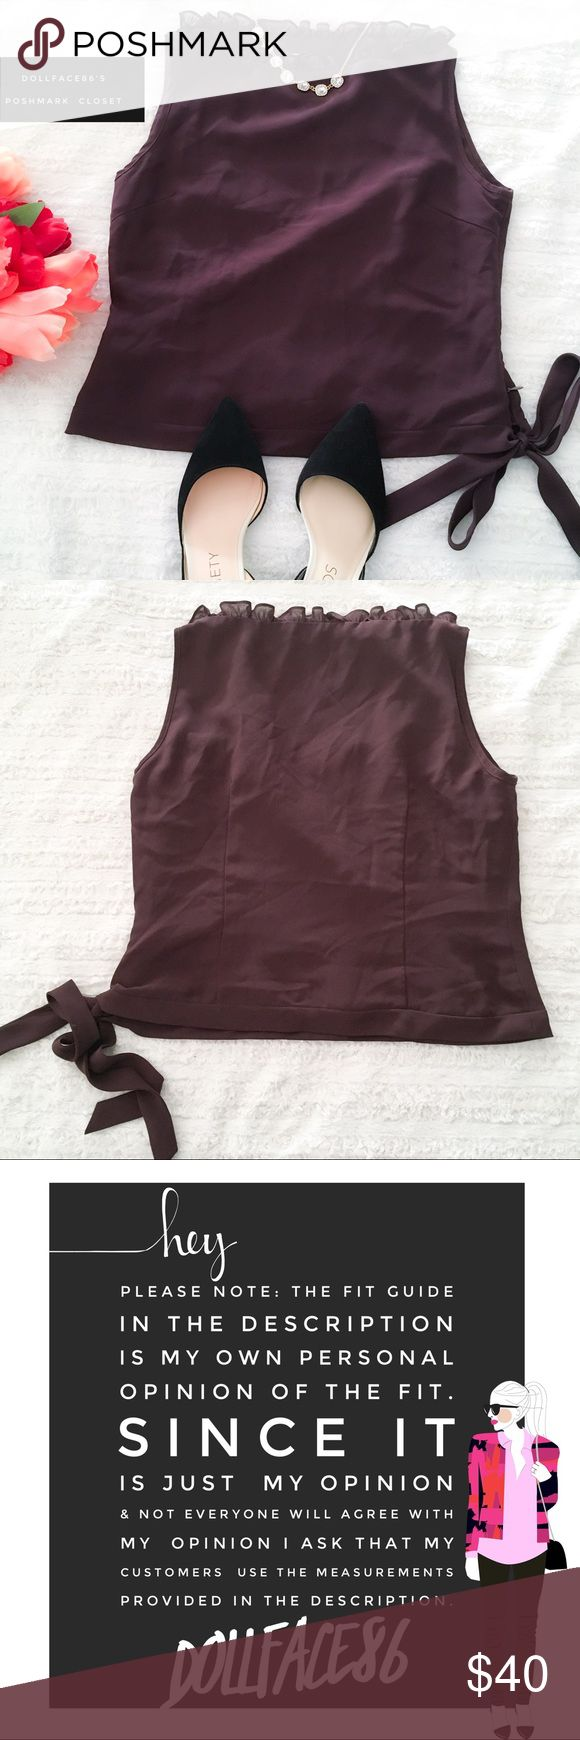 """Pretty Dark Purple Ruffle Neckline Top ✦this top has a pretty ruffle boatneck, a semi cropped waist and and pretty ribbon tie on the side✦{I am not a professional photographer, actual color of item may vary ➾slightly from pics}  ❥chest:17.5"""" ❥waist:16.5"""" ❥length:18"""" •approximate measurements taken flat ➳material/care:polyester/machine wash  ➳fit:true & slightly cropped  ➳condition:gently used   ✦20% off bundles of 3/more items ✦No Trades  ✦NO HOLDS ✦No transactions outside Poshmark  ✦No…"""